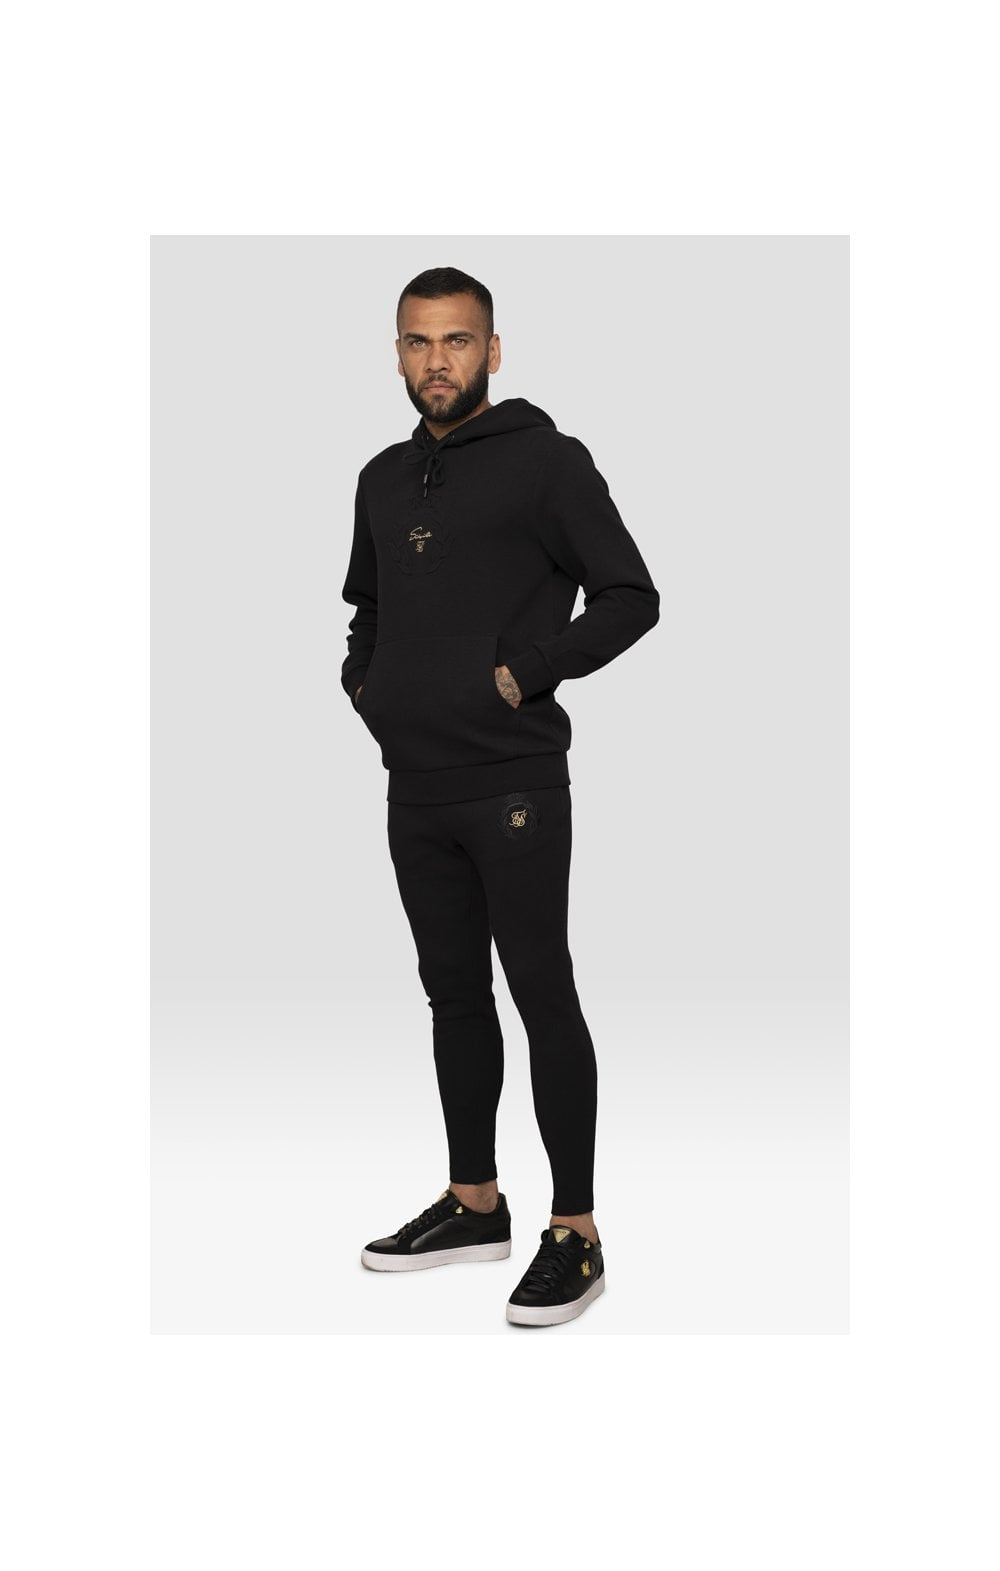 Load image into Gallery viewer, SikSilk x Dani Alves Muscle Fit Overhead Hoodie – Black